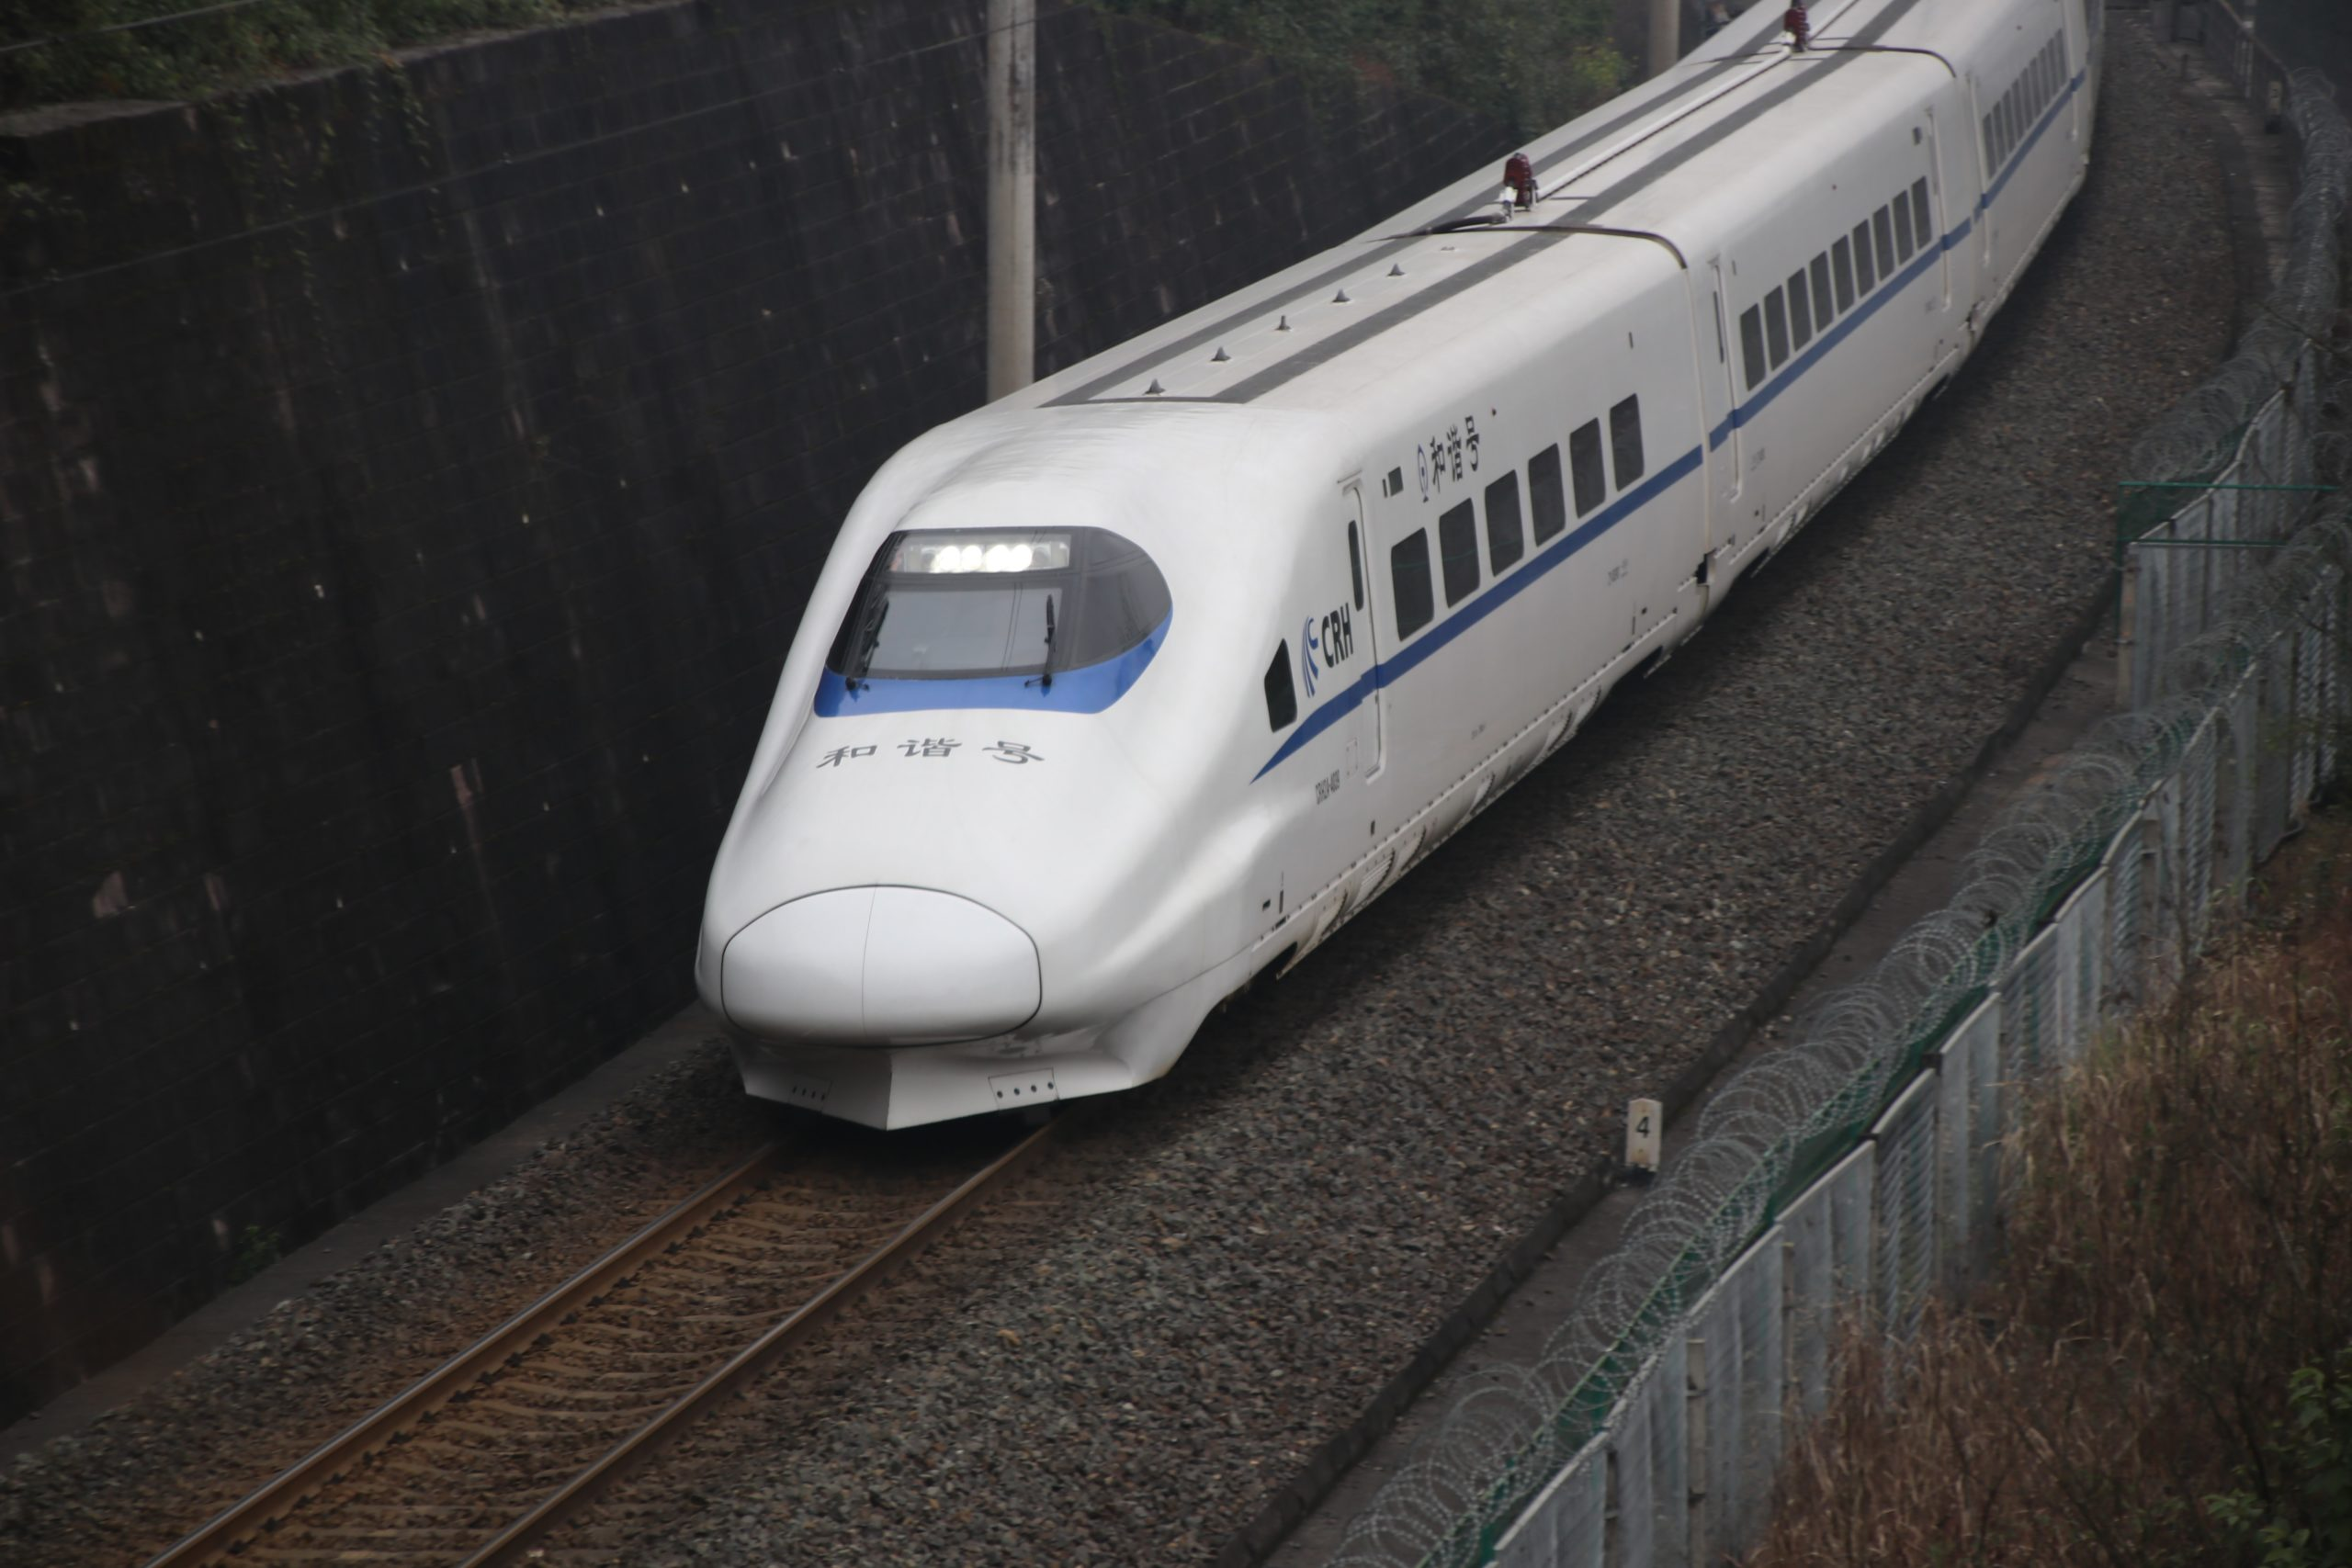 front view of a Japan bullet train